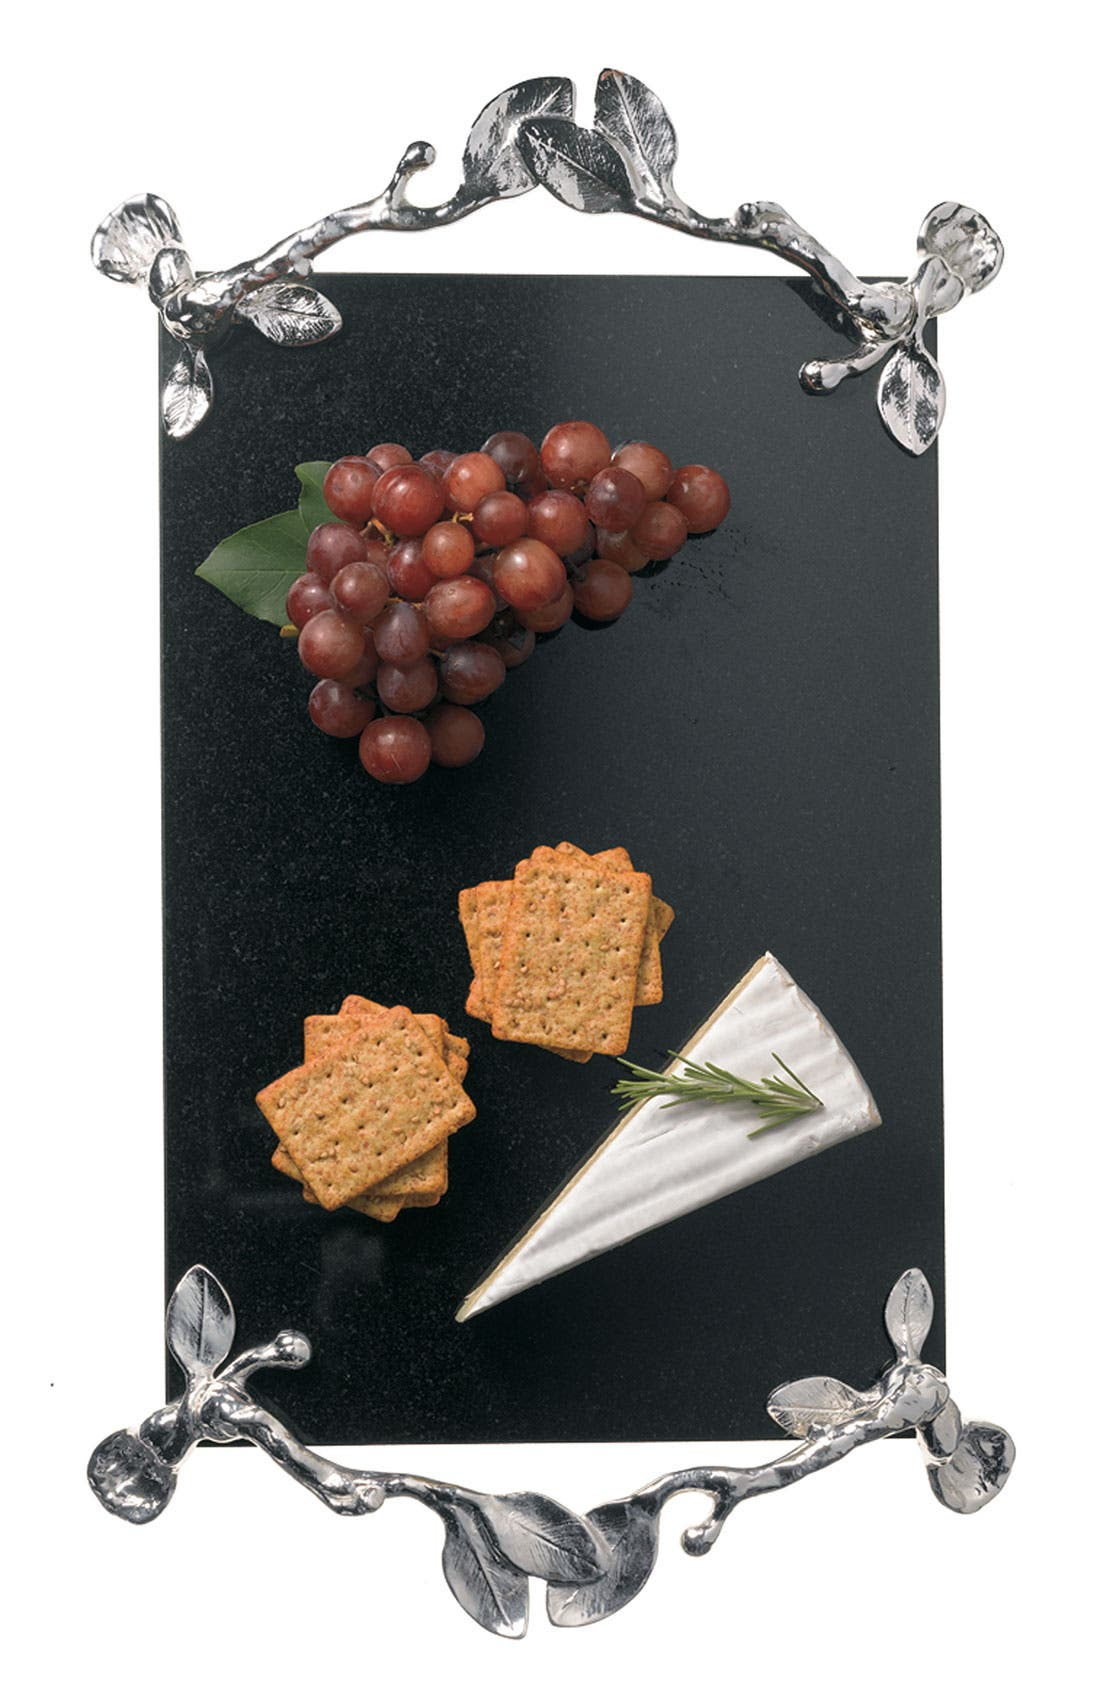 Alternate Image 3  - Michael Aram 'Sleepy Hollow' Granite Cheese Board